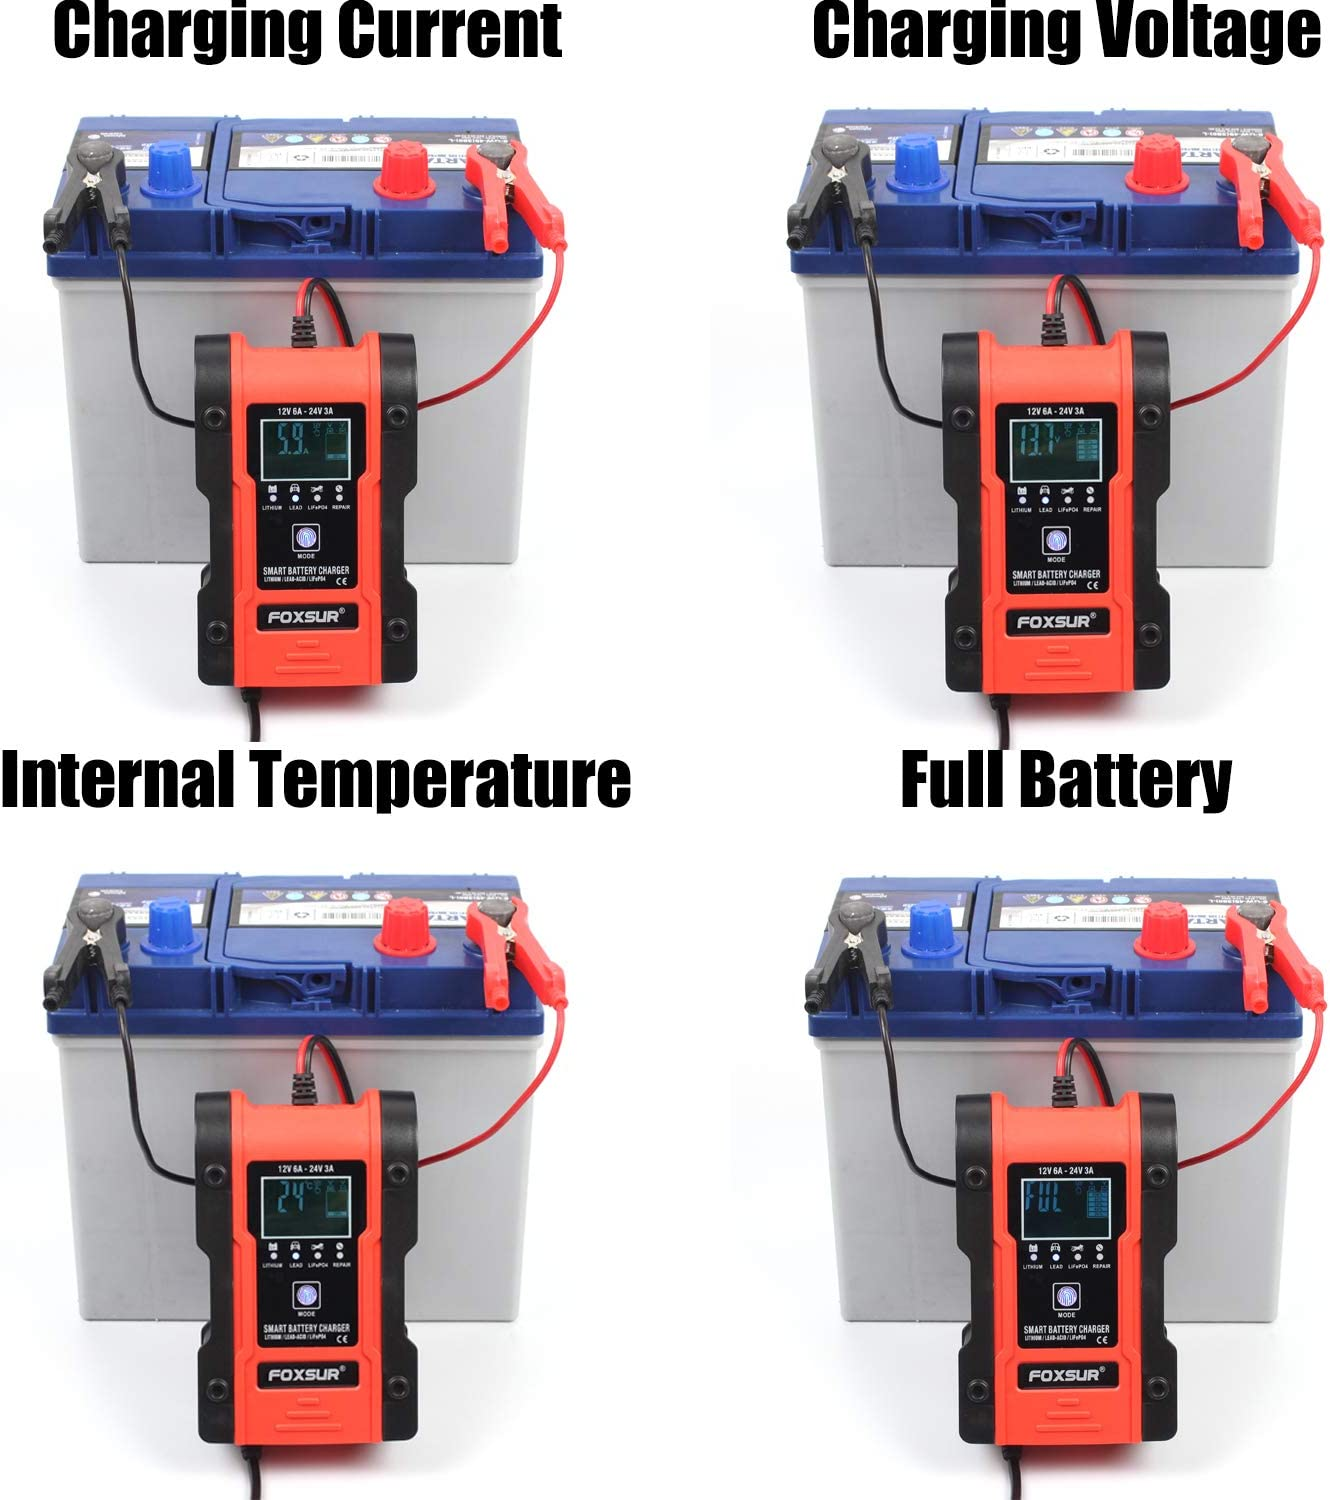 Lithium Battery Charger 6Amp 12V//24V Fully Automatic Battery Charger Maintainer HDJDZ Car Battery Charger Calcium etc lead-acid batteries Delivers 7 Stage Charging for lithium batteries